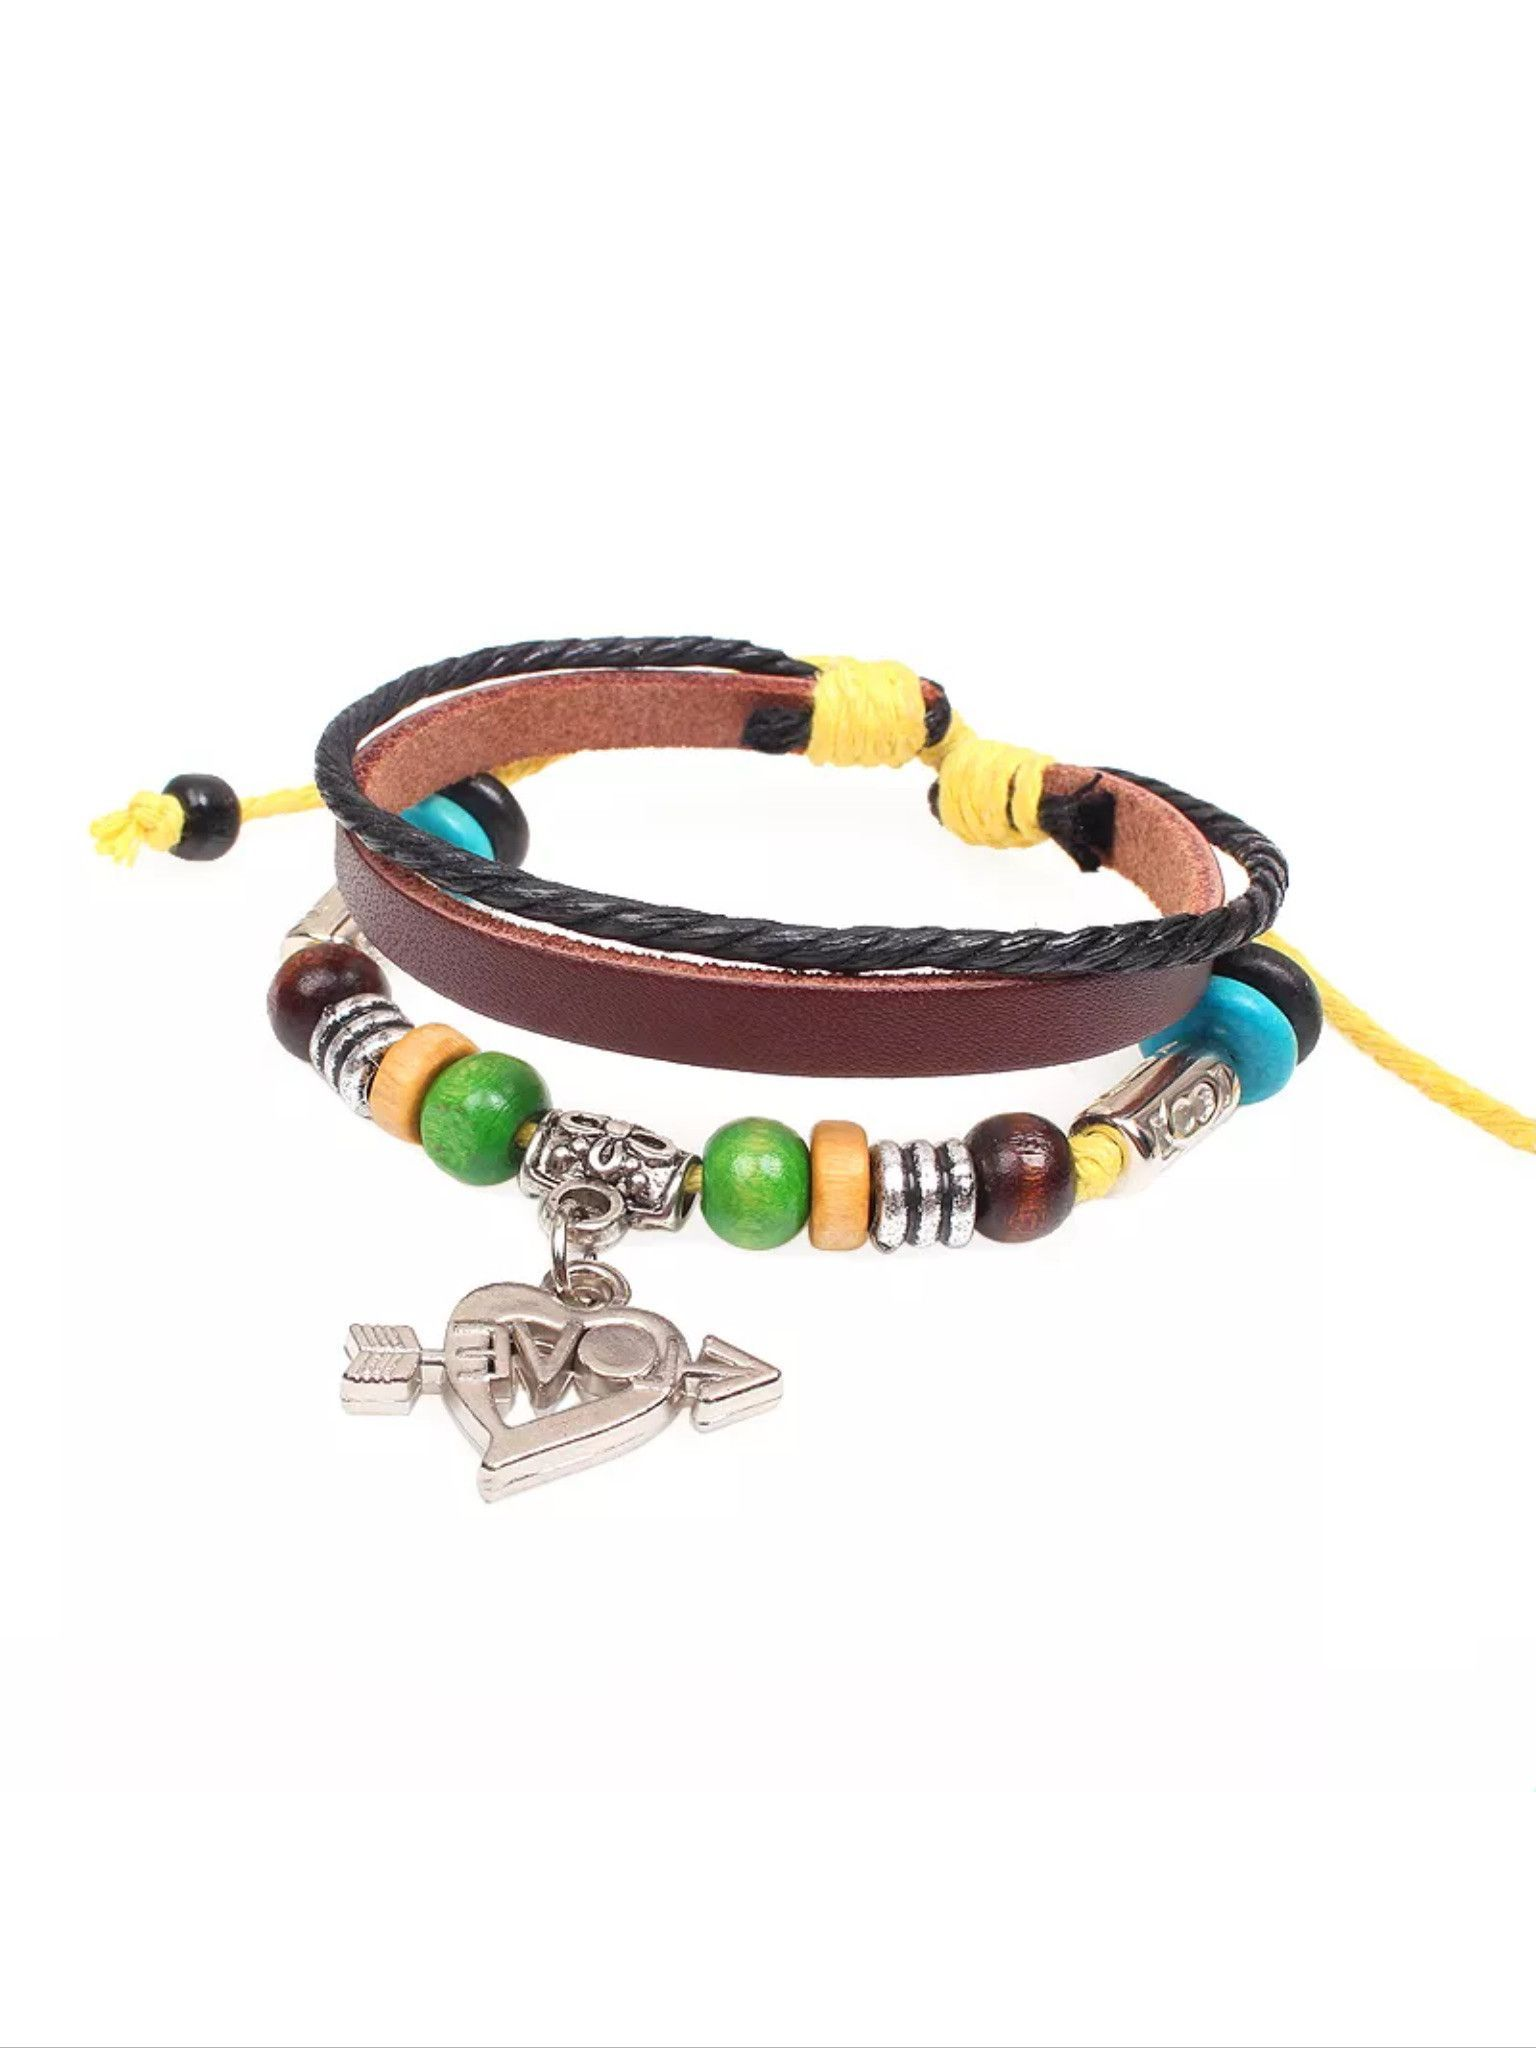 Love charm leather bracelet leather bracelets and products